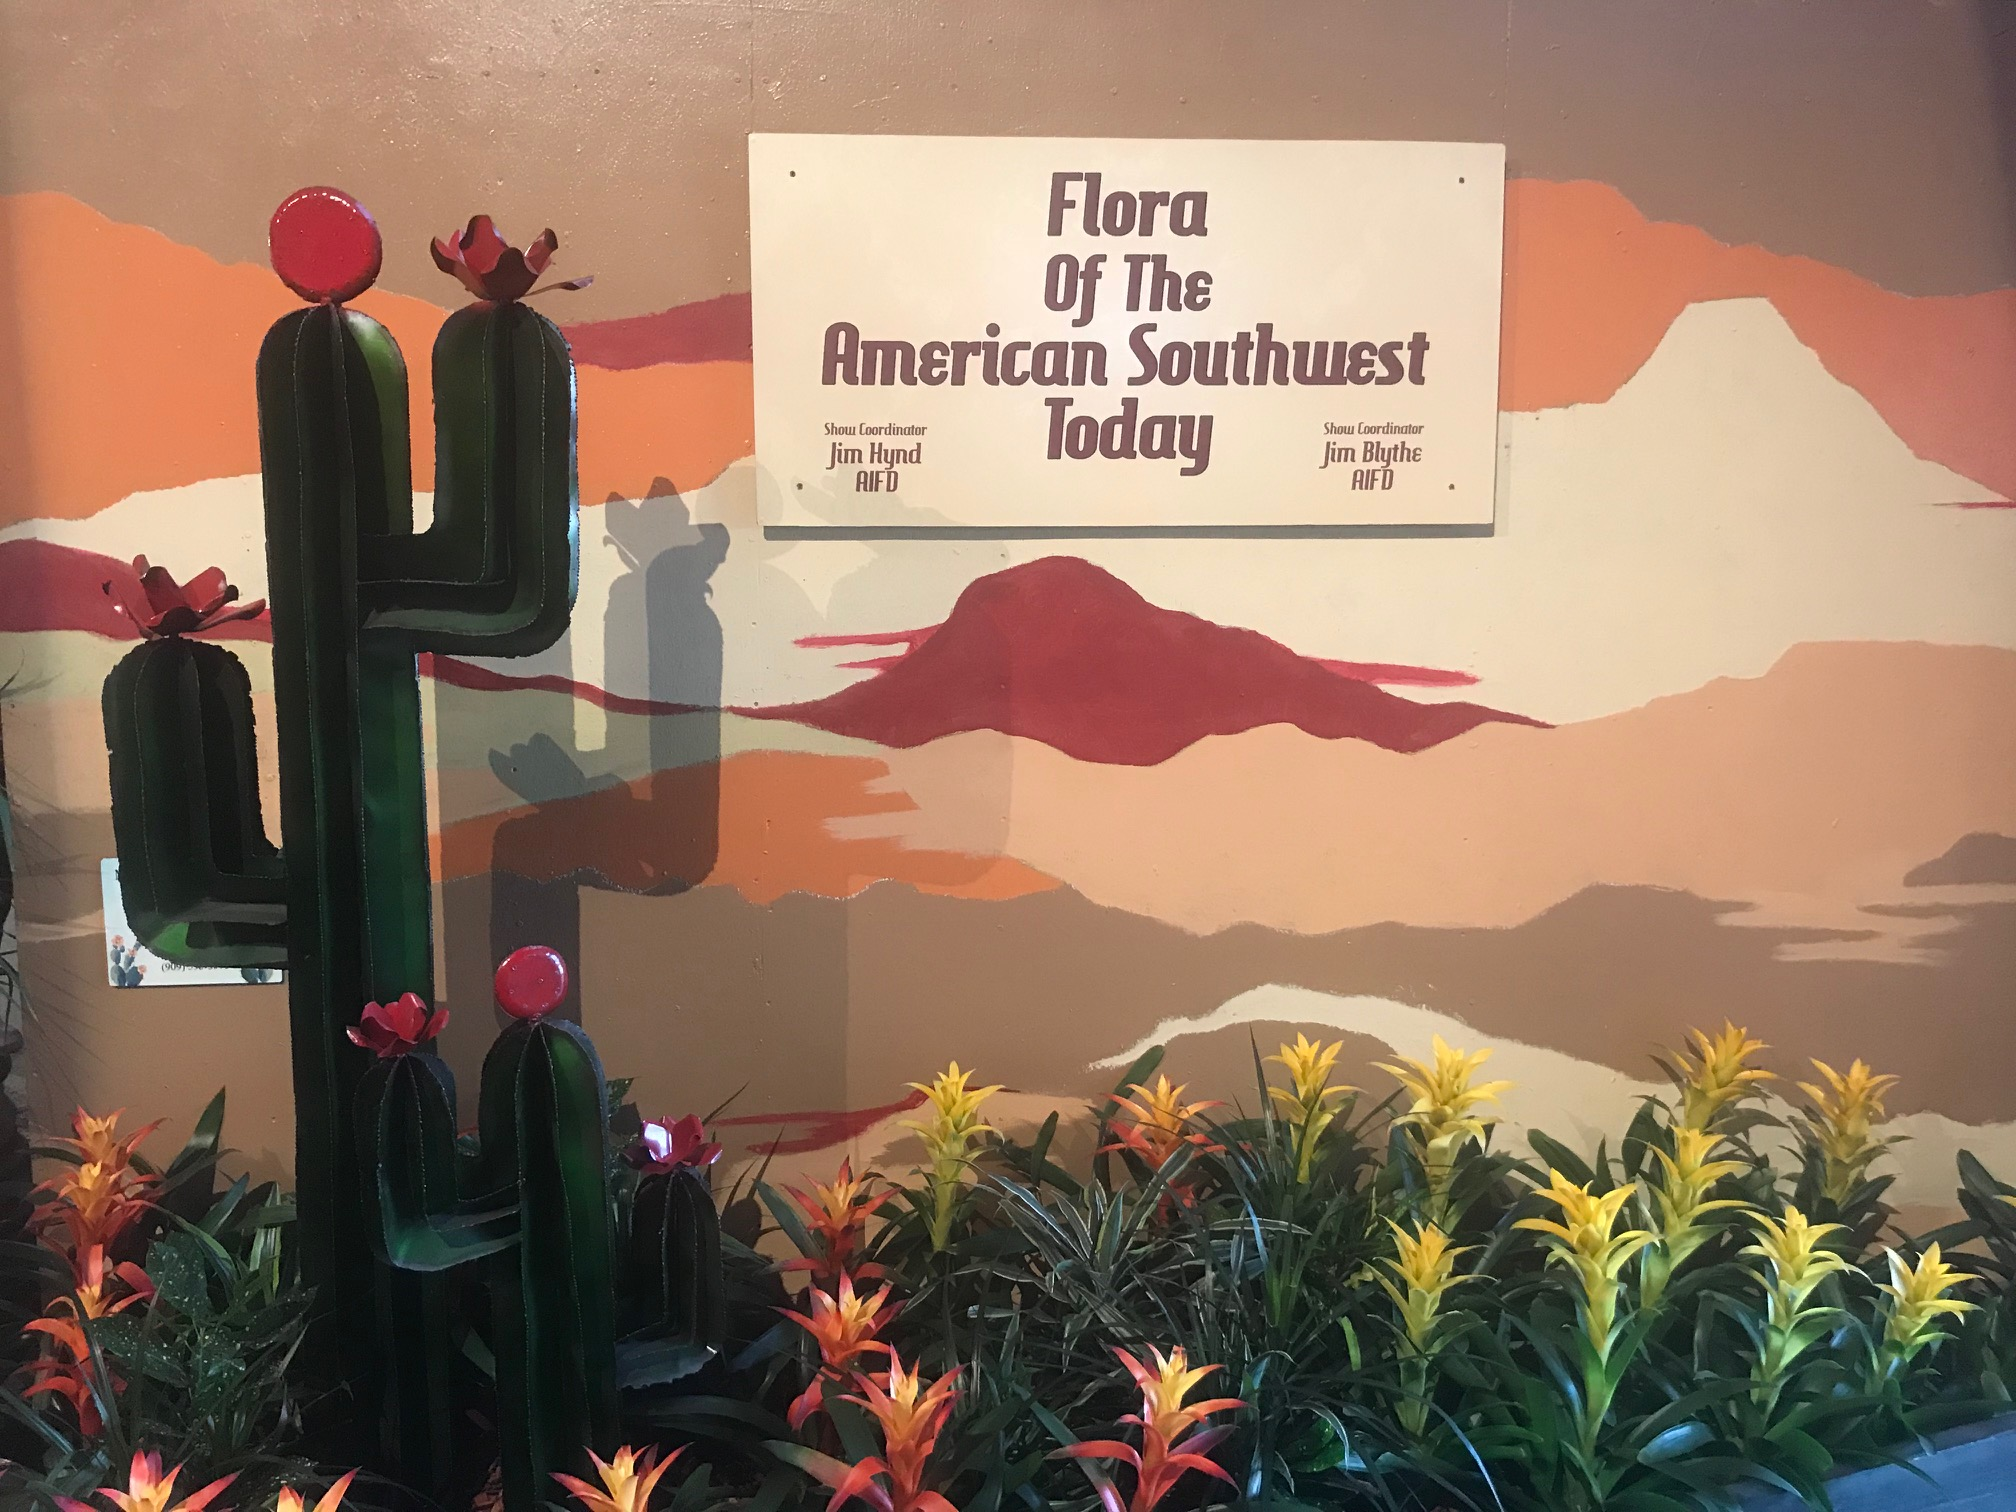 Flora & Fauna of the American Southwest